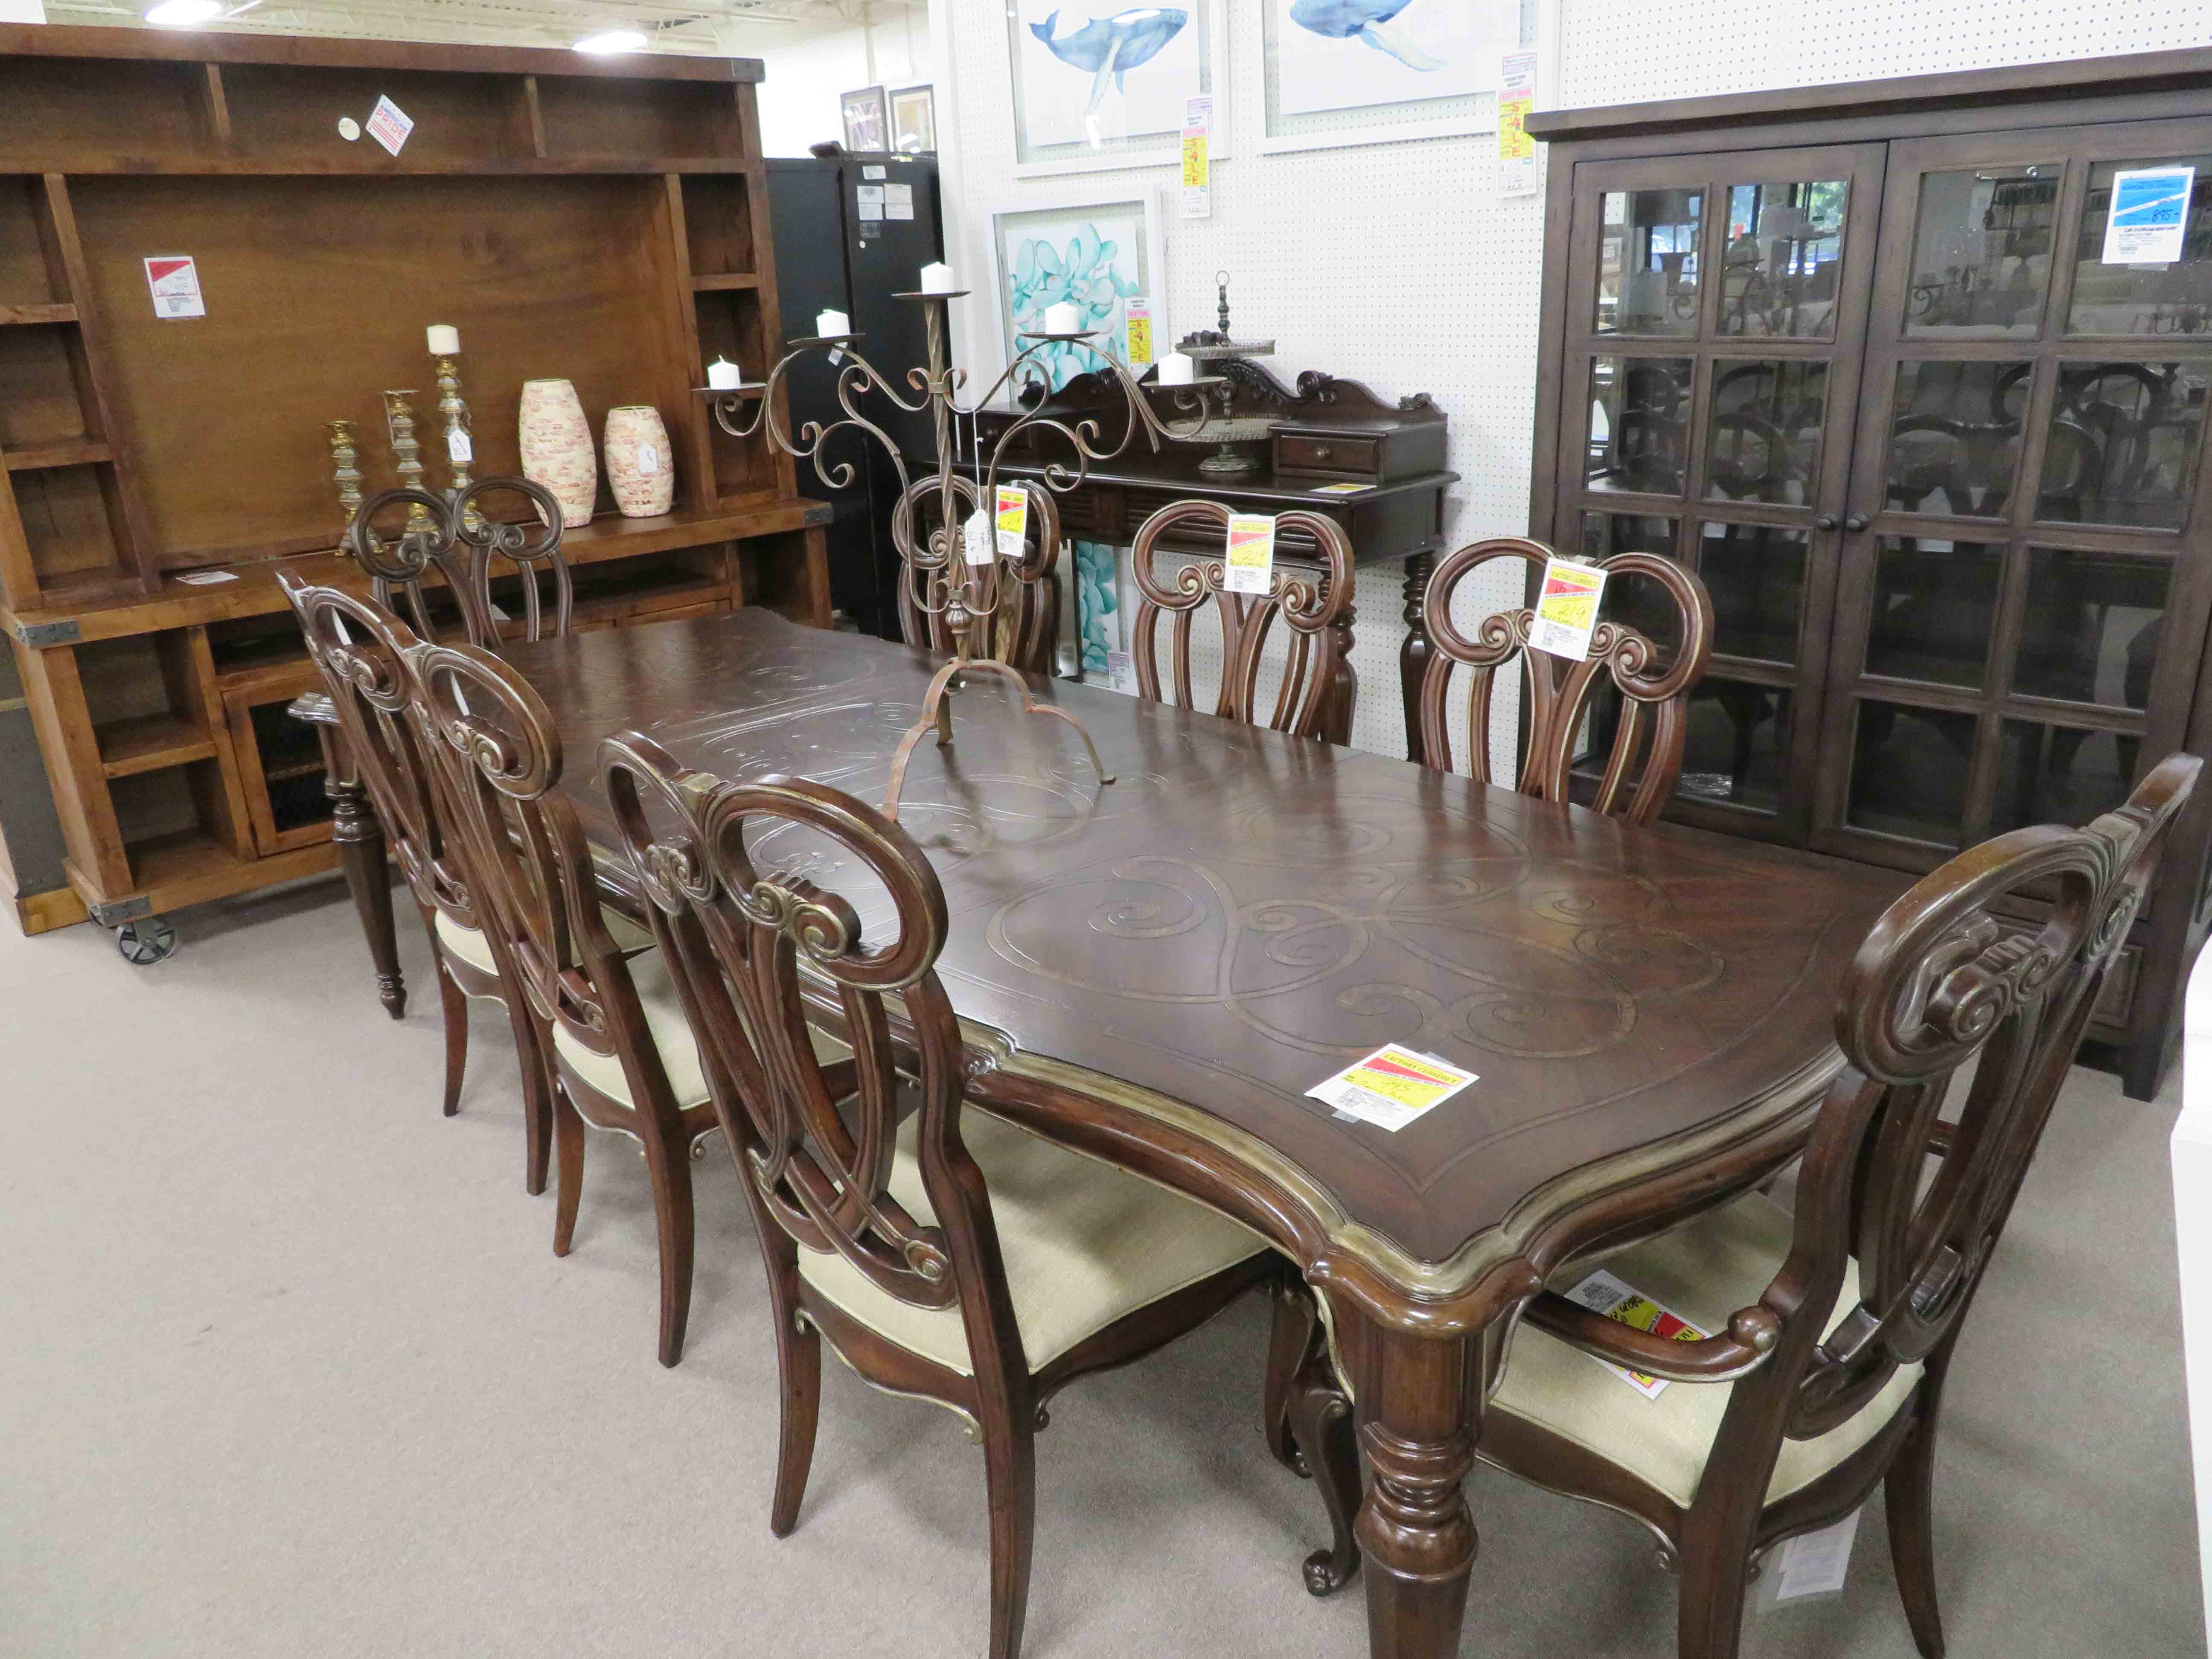 Furniture Market Raleigh Furniture Store For Bedroom Living Dining Room Furniture